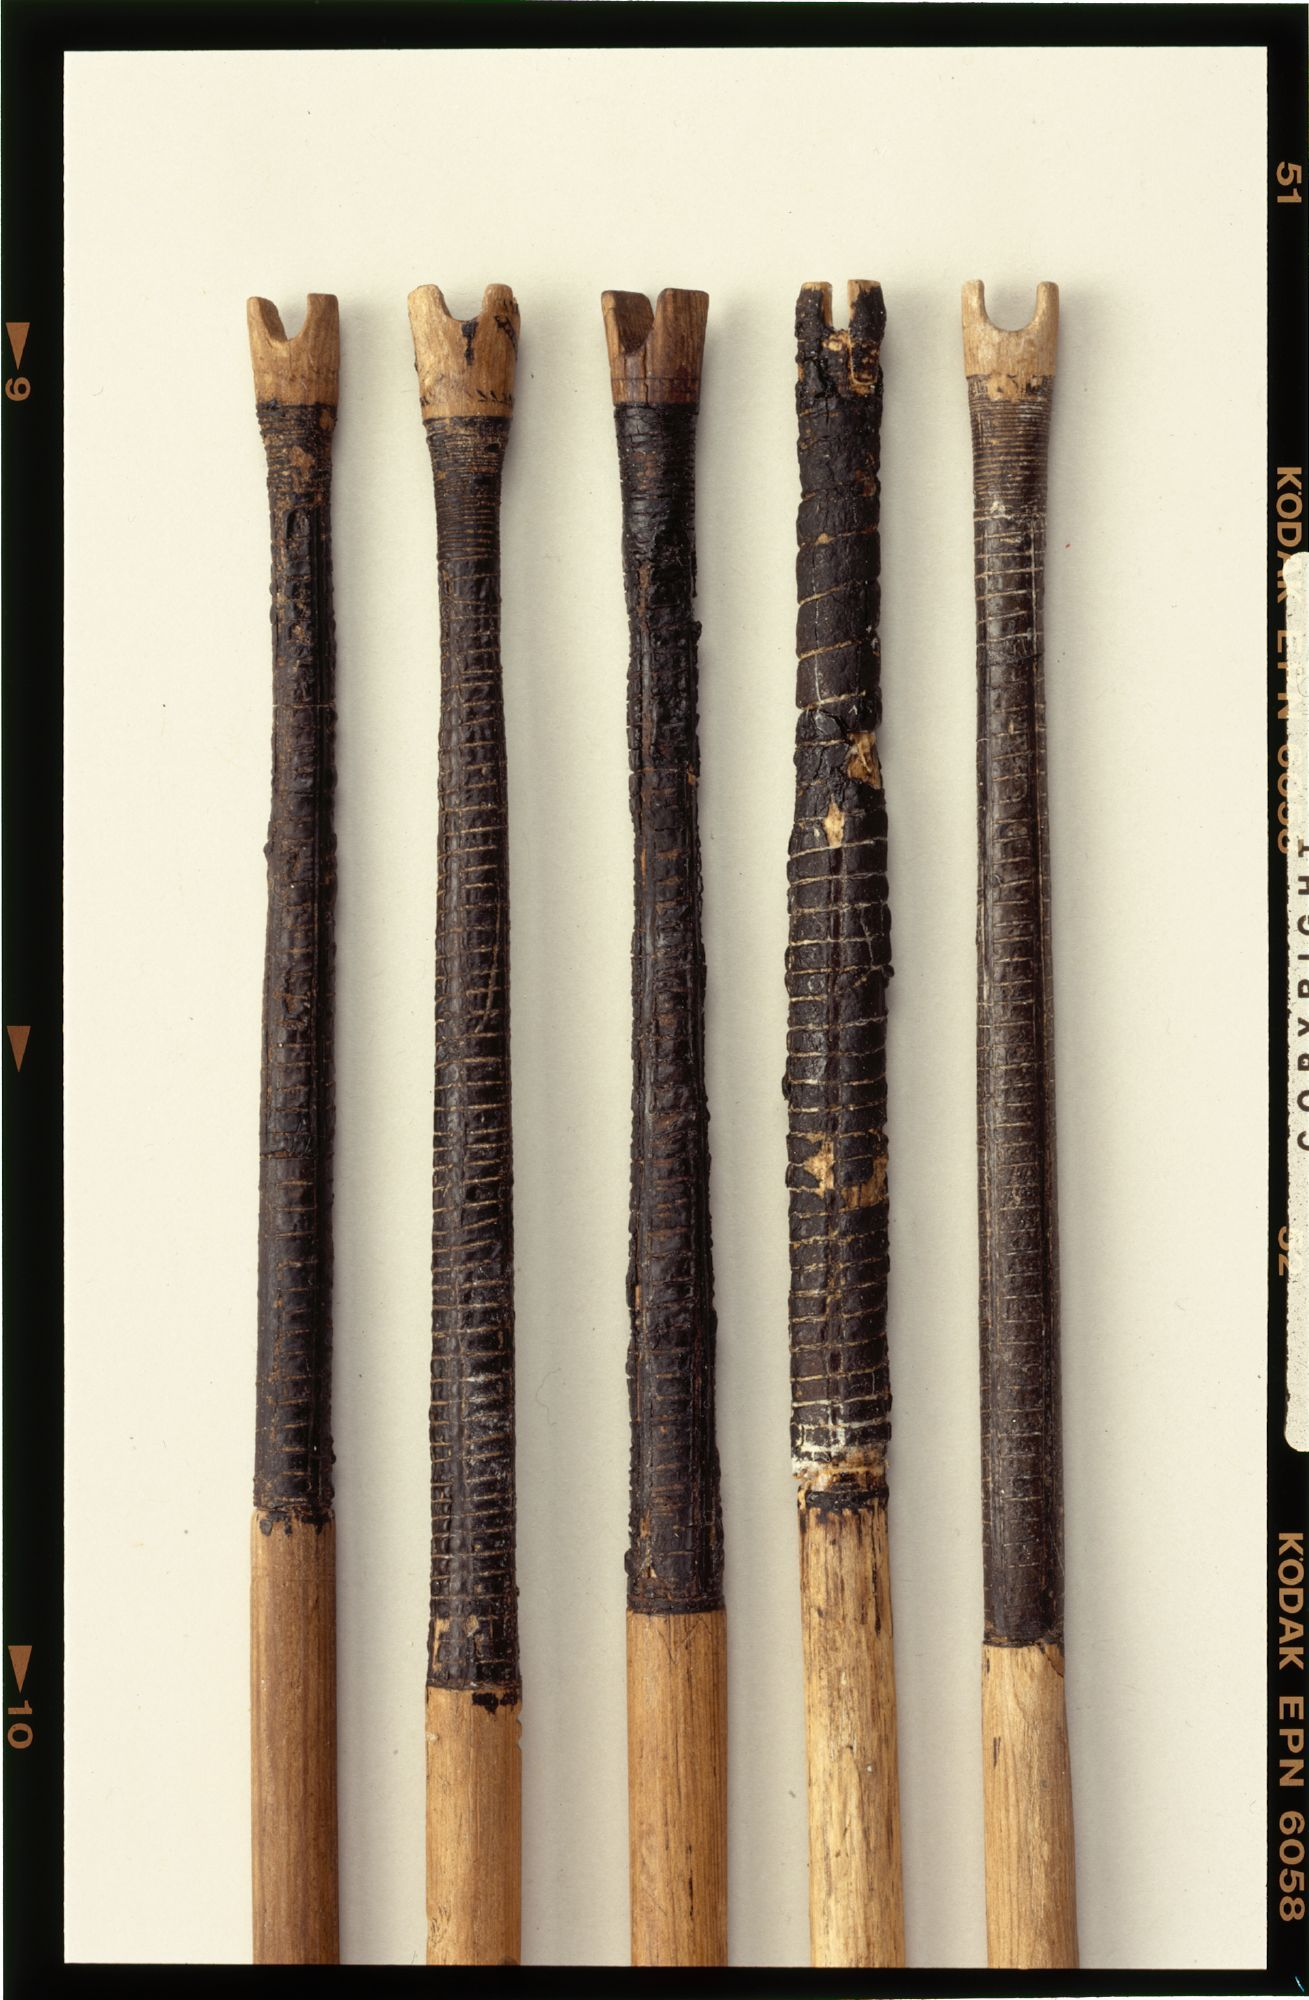 Details of early iron age arrows from Nydam bog in Denmark